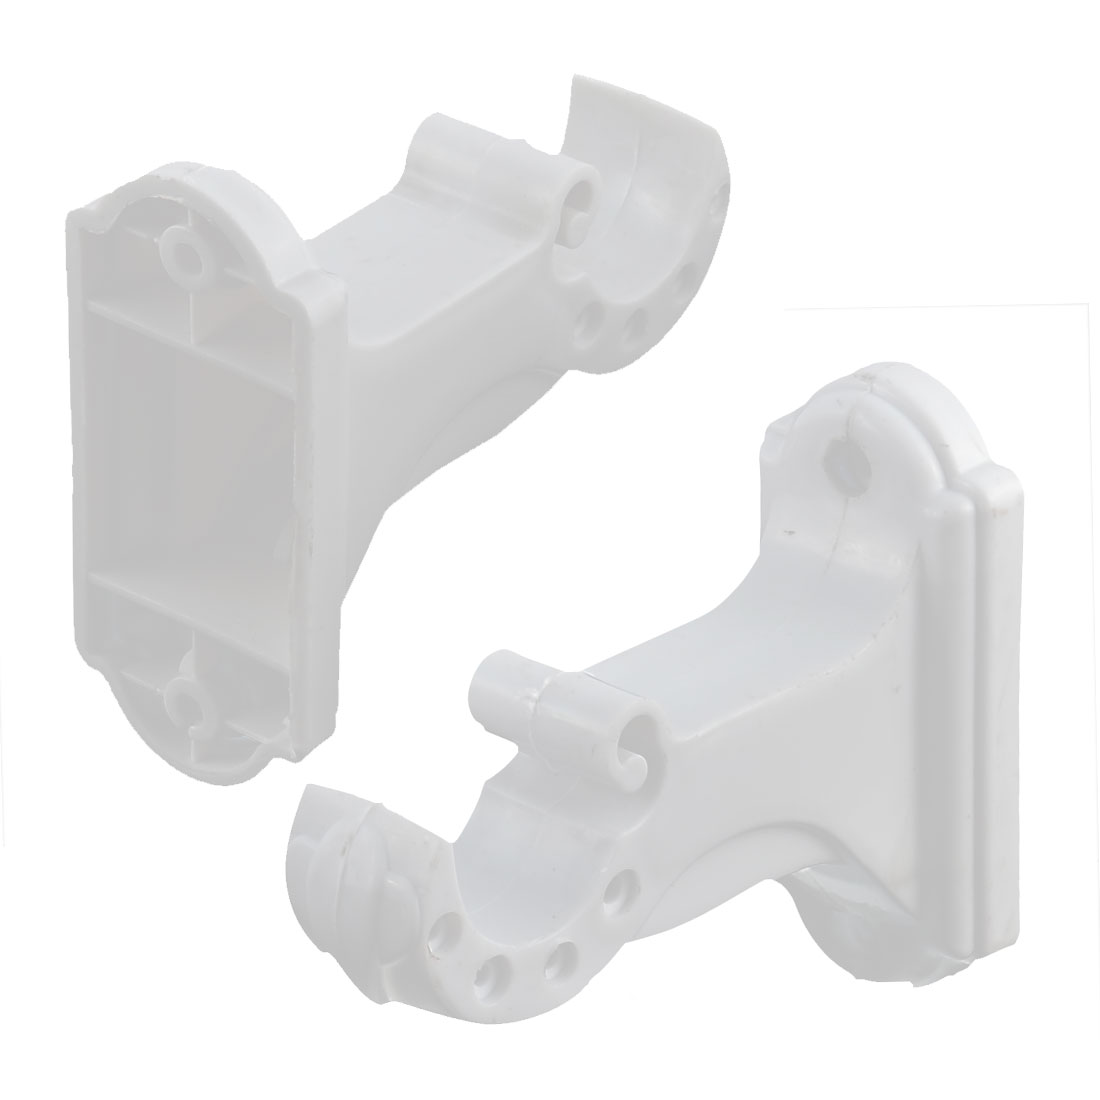 Plastic Single Groove Wall Mount Curtain Drapery Pole Rod Bracket Hook White 2pcs